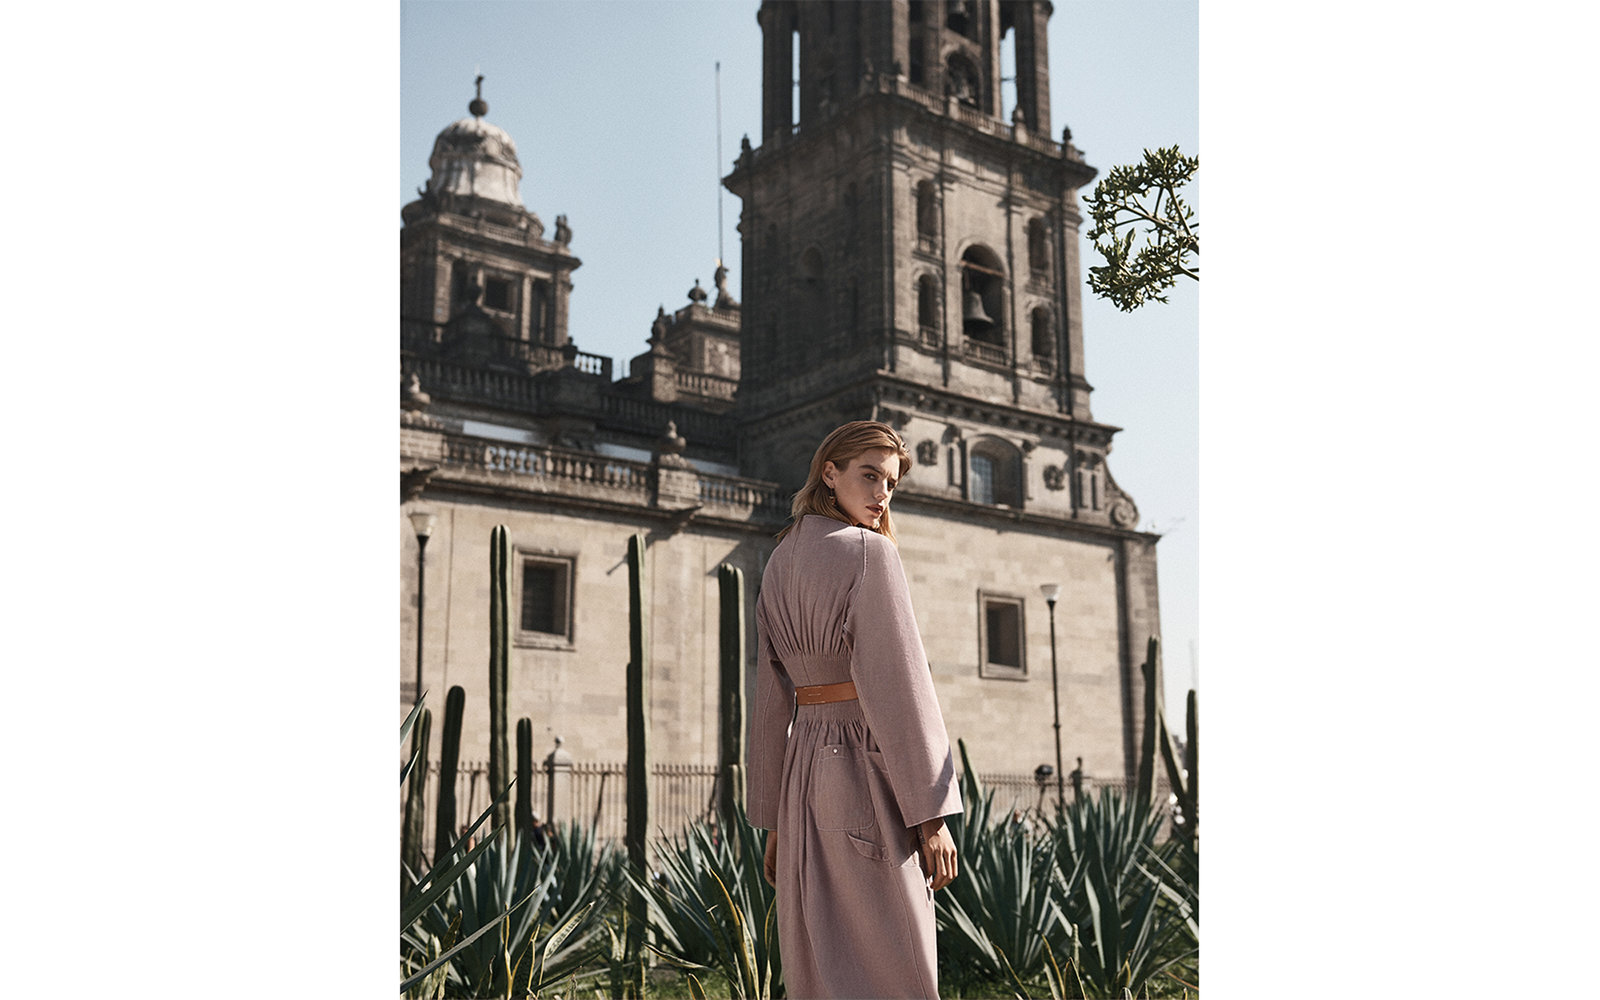 Model Michi Kat next to the Metropolitan Cathedral, in the city's historic center, the Zócalo